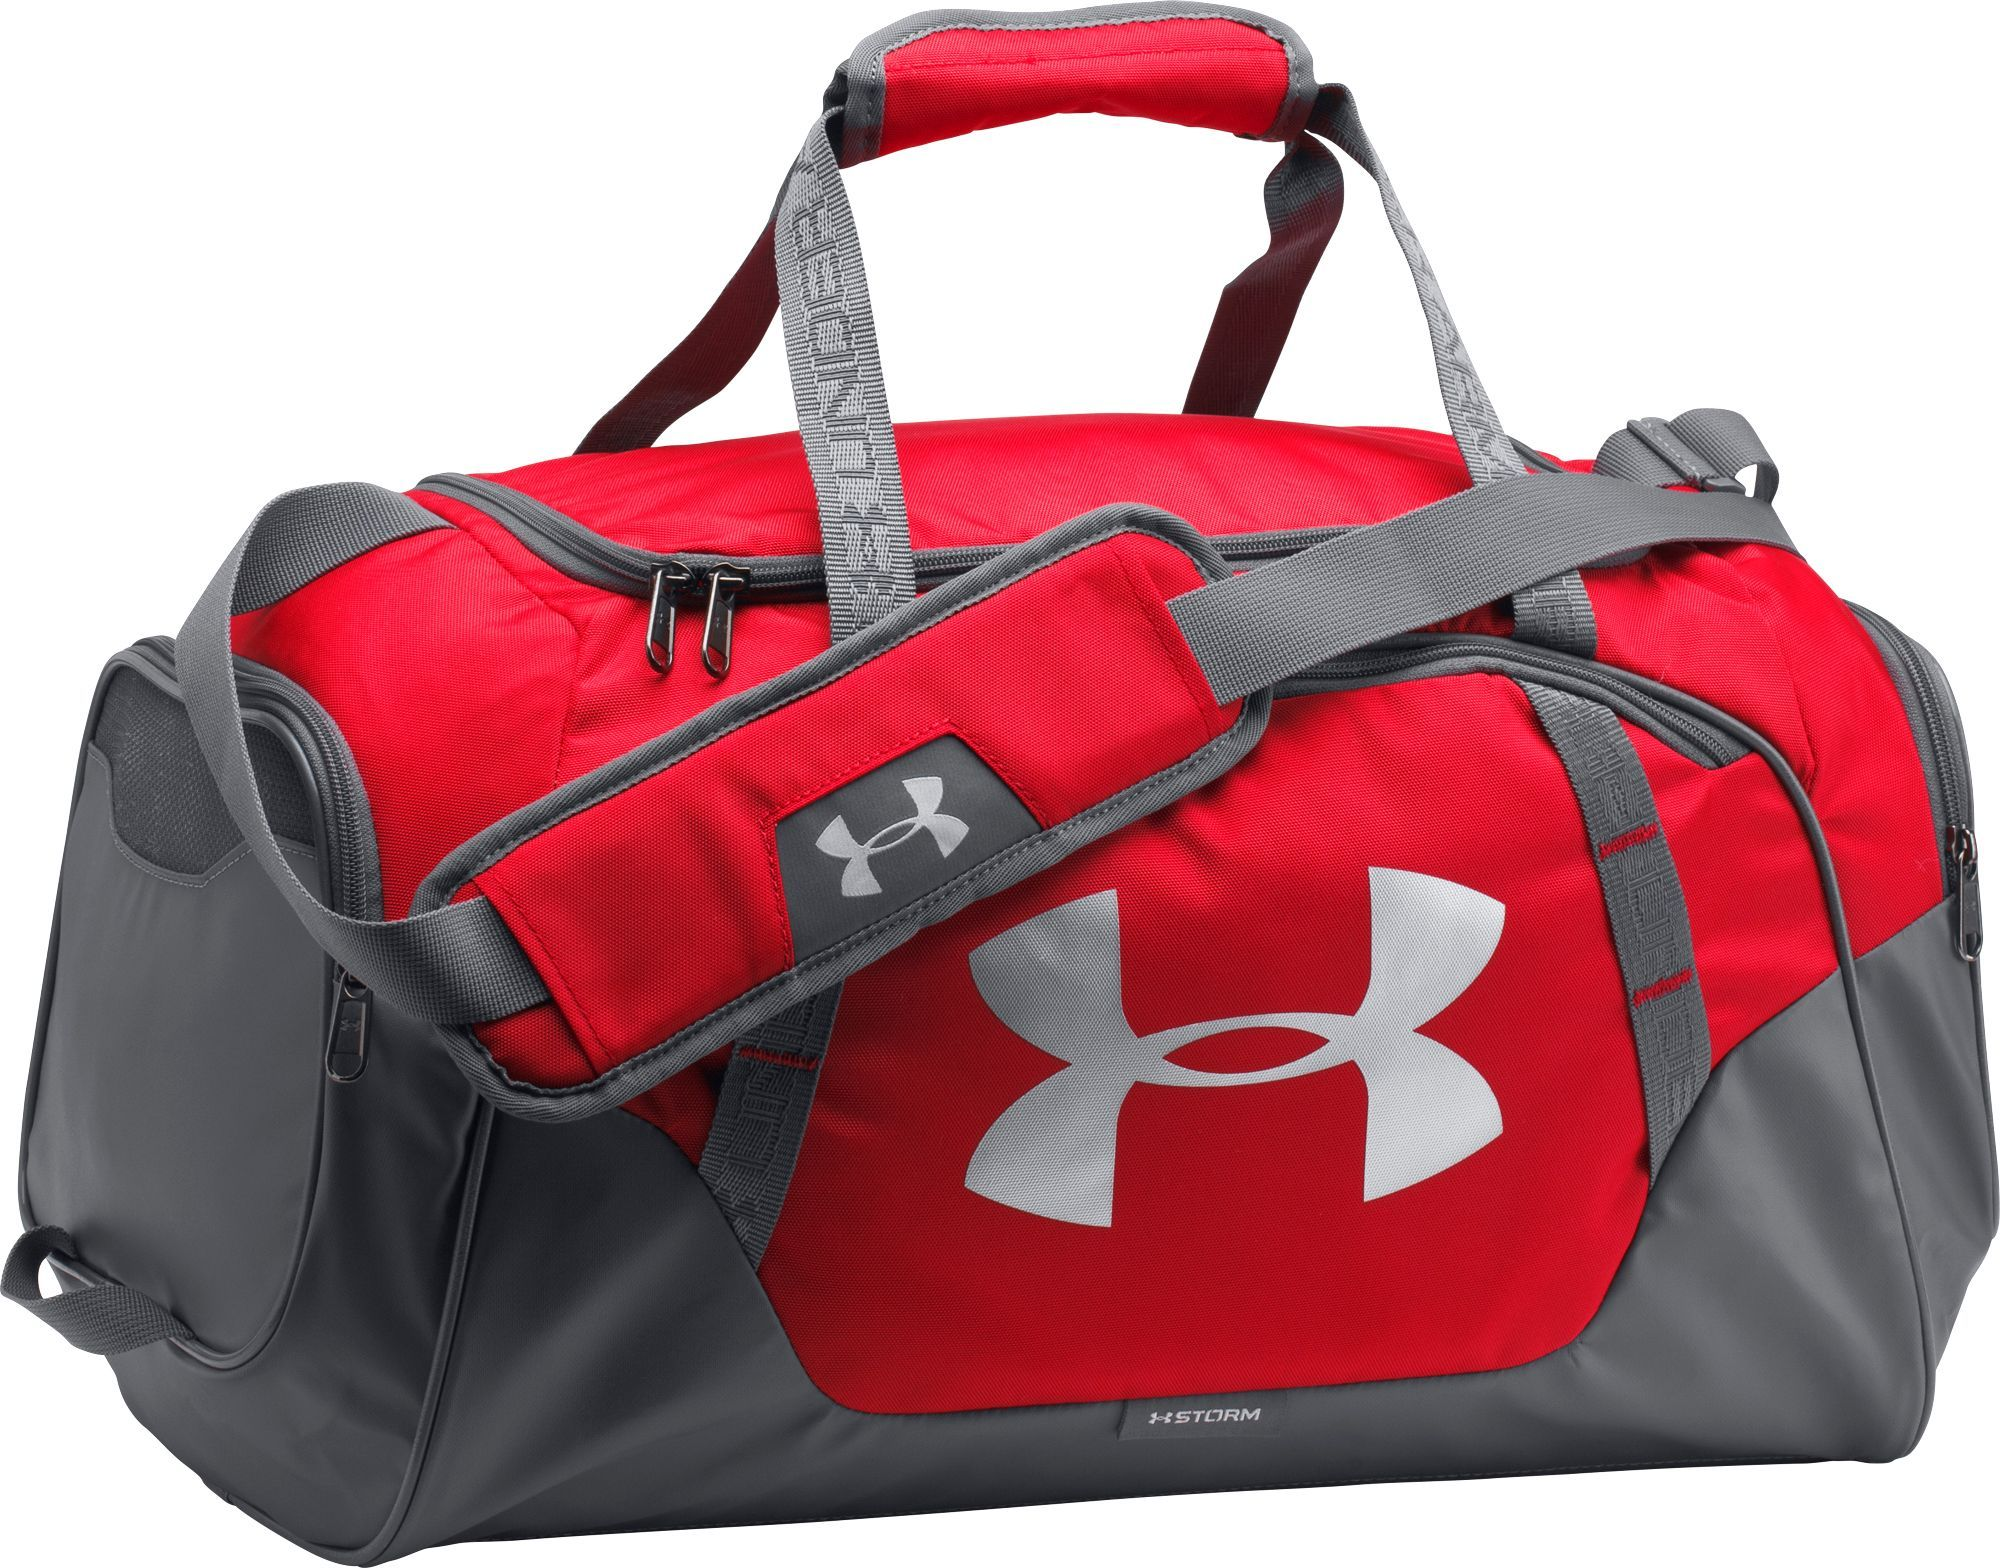 0a35f9a99e21 Under Armour Undeniable 3.0 Small Duffle Bag in 2019